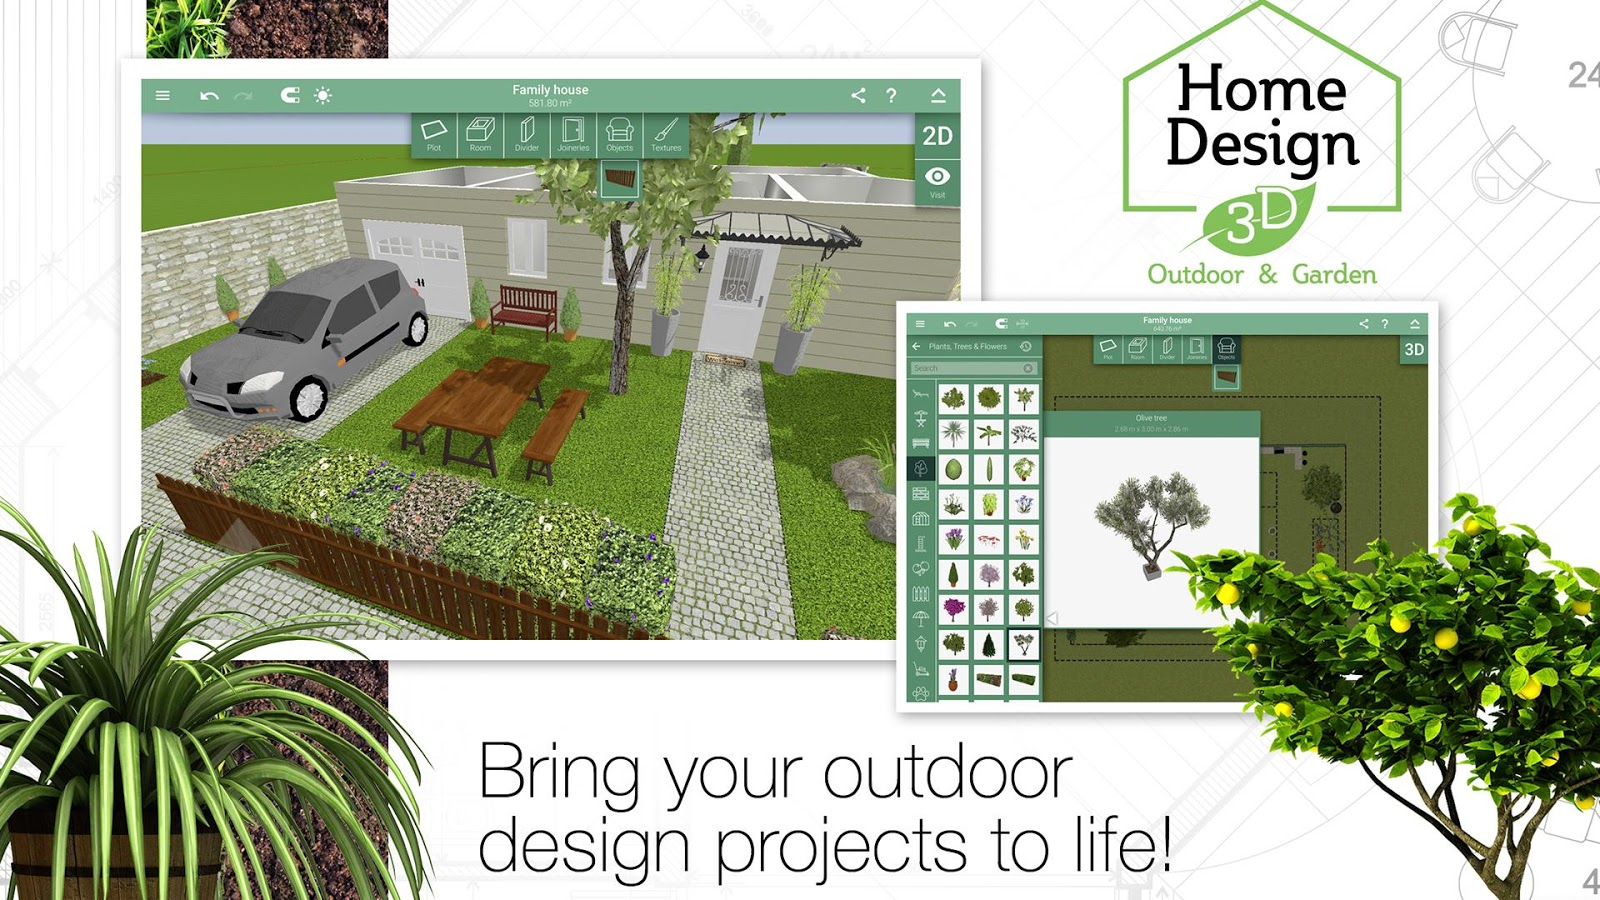 Home design 3d outdoor garden android apps on google play - Home design software app ...